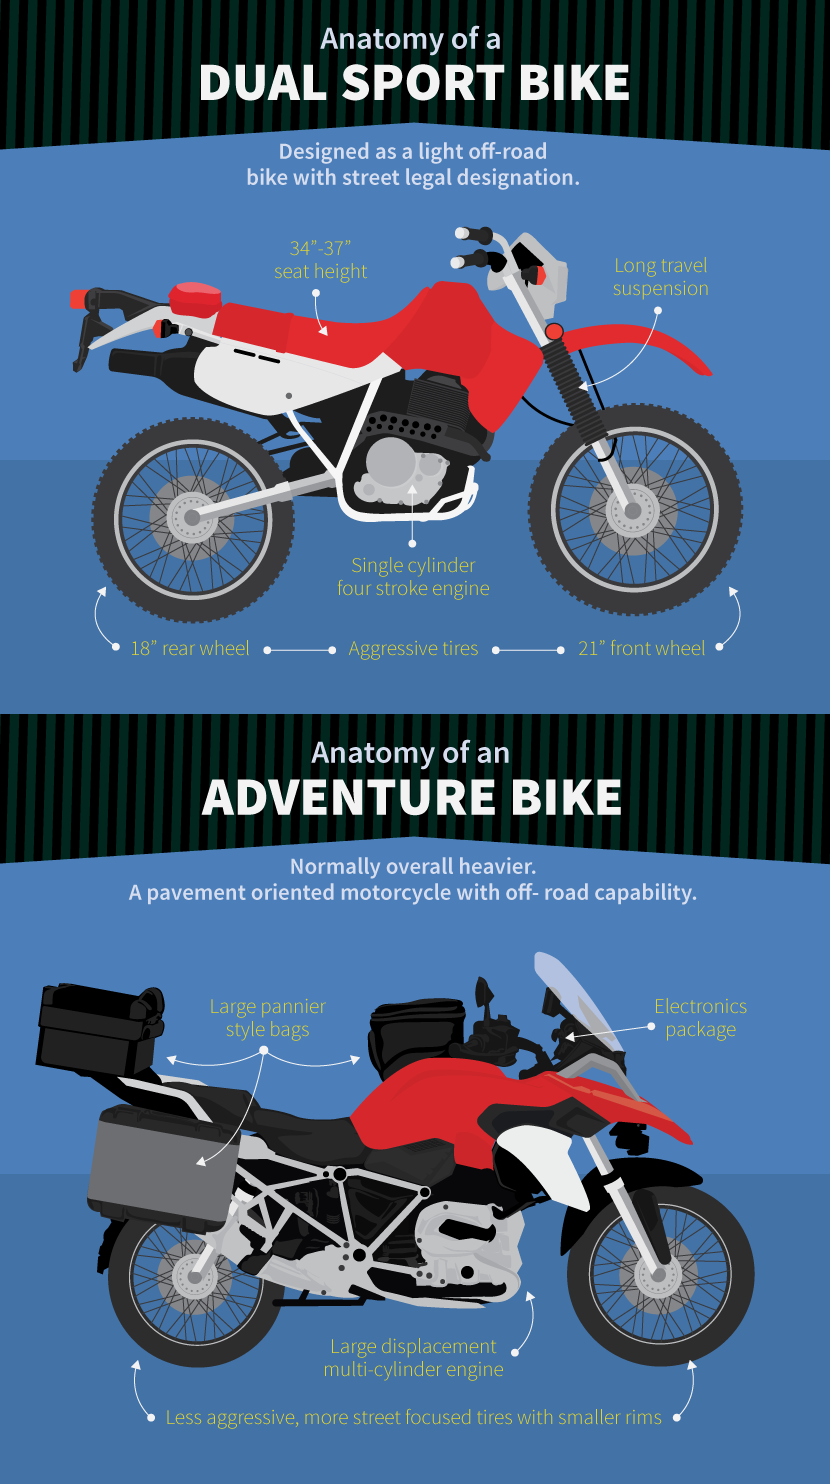 Take Your Ride OffRoad Adventure motorcycling dual